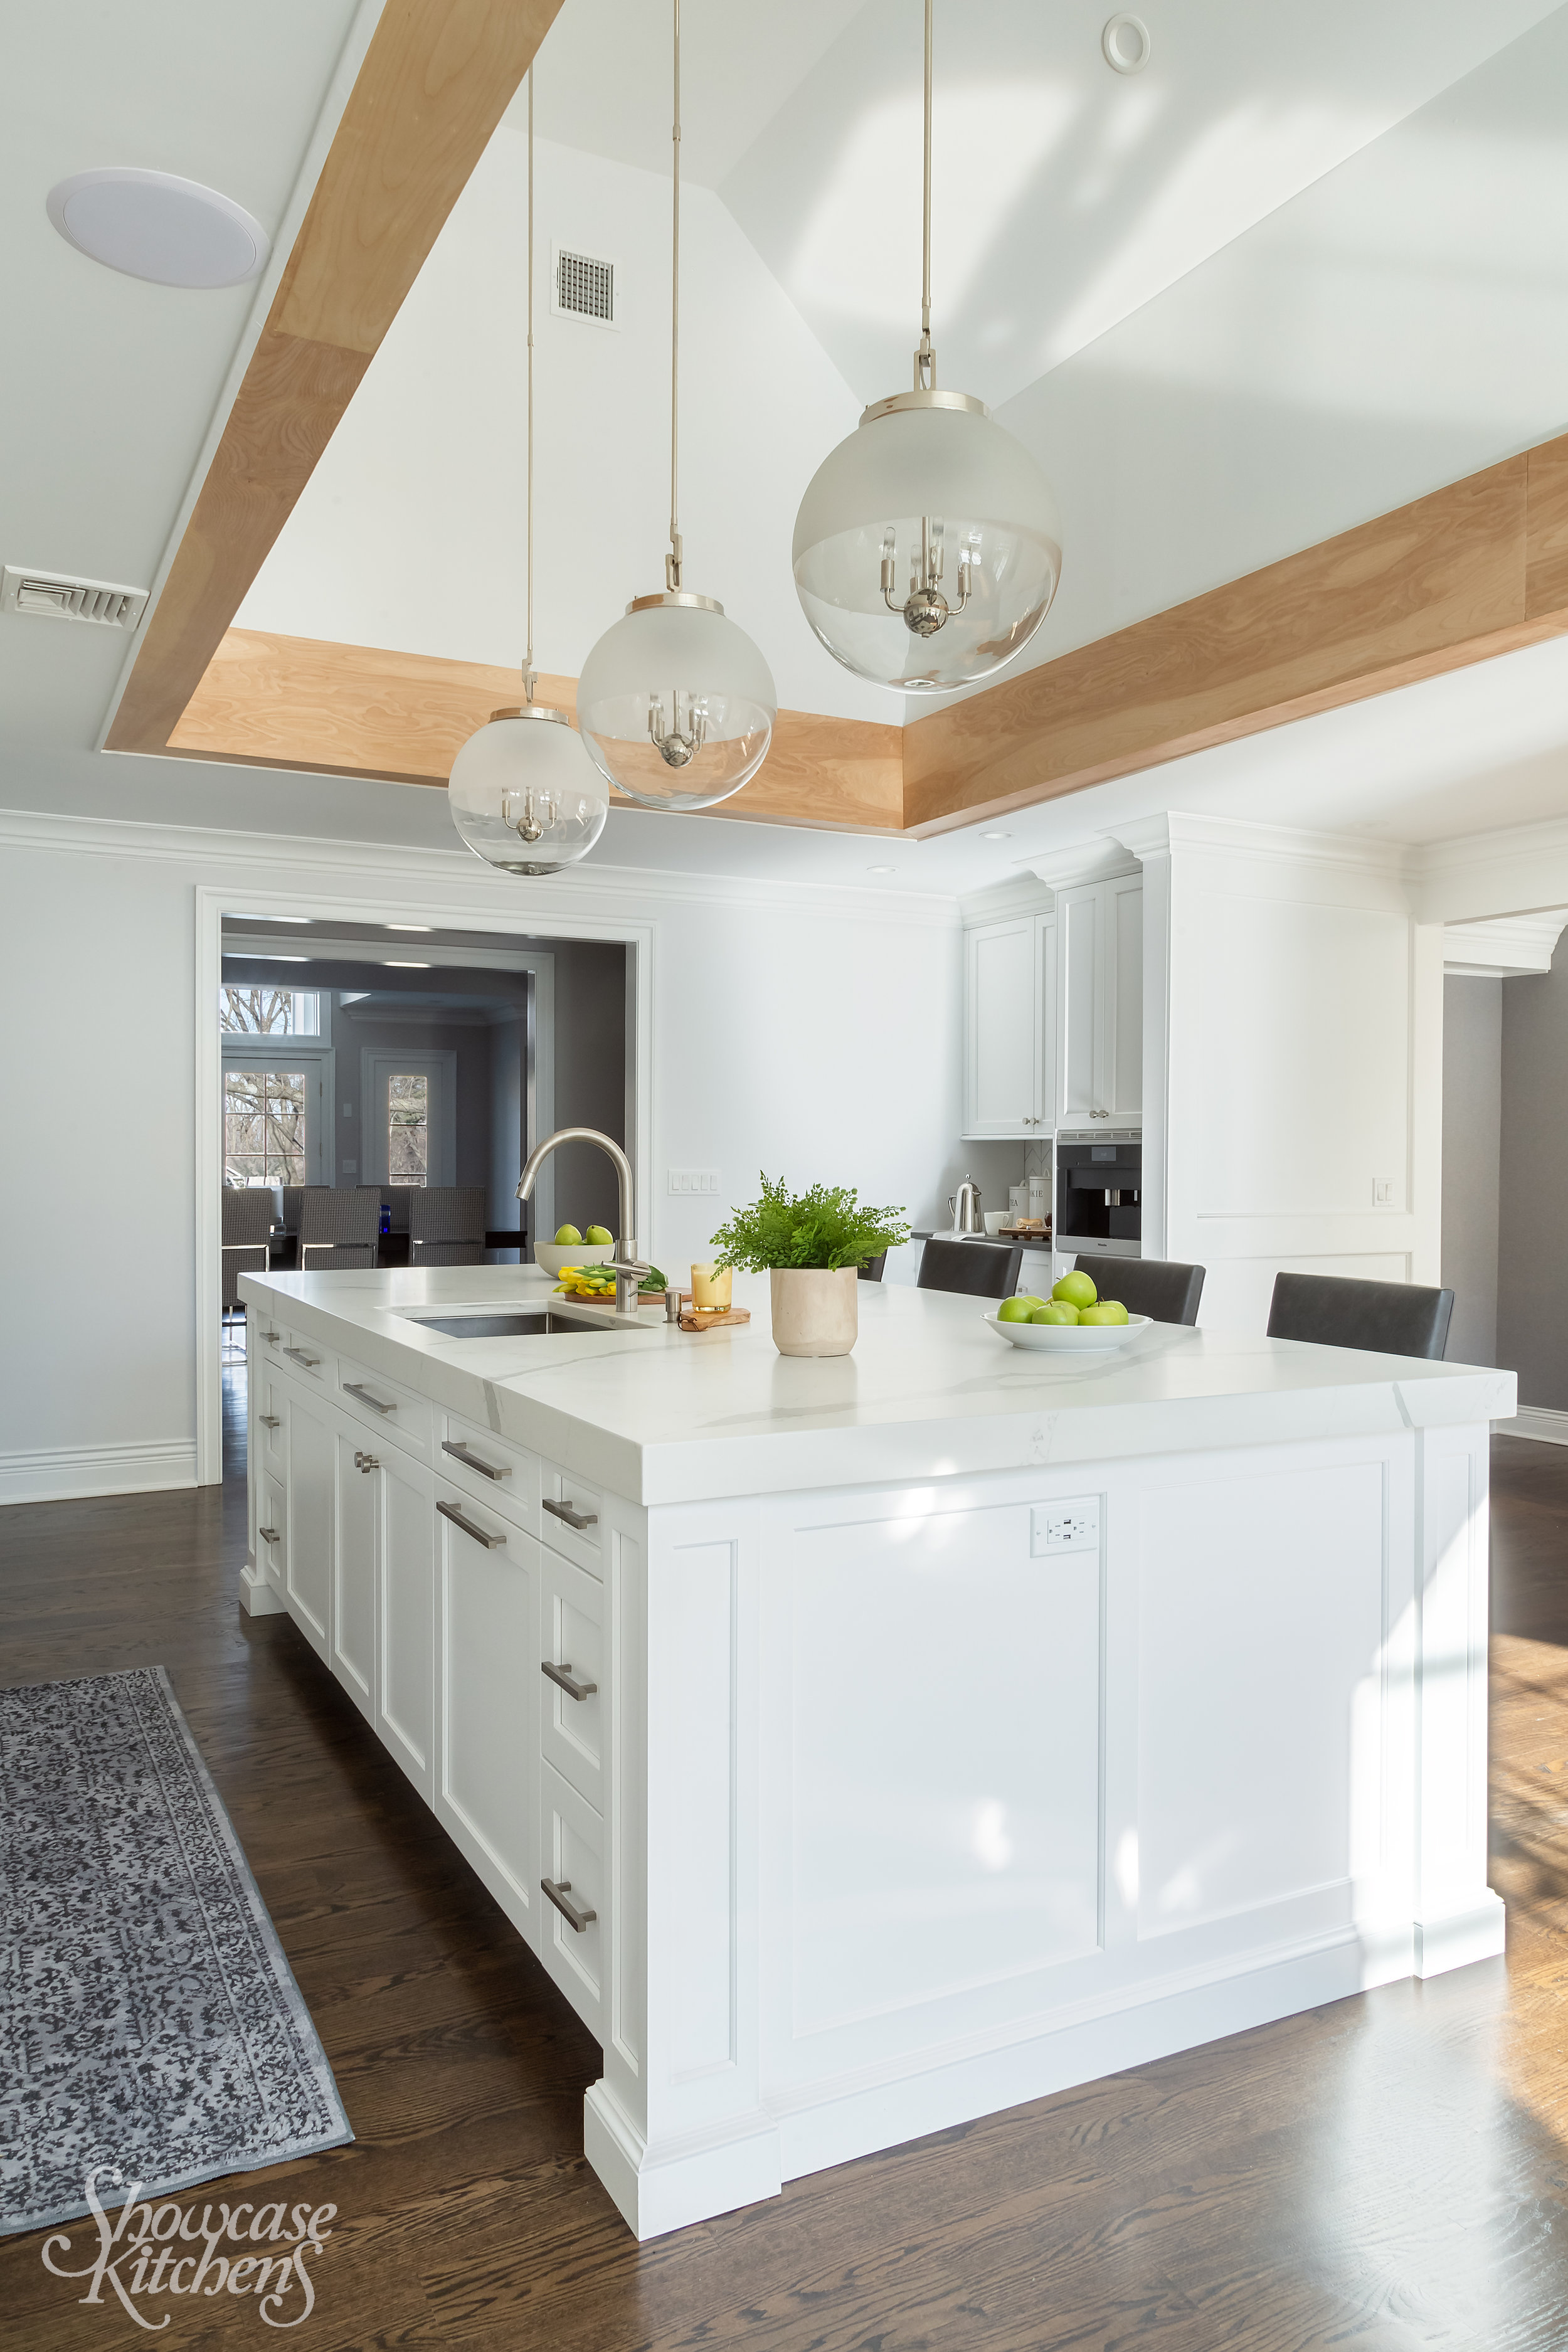 Transitional style kitchen with flying oak beam and large center island